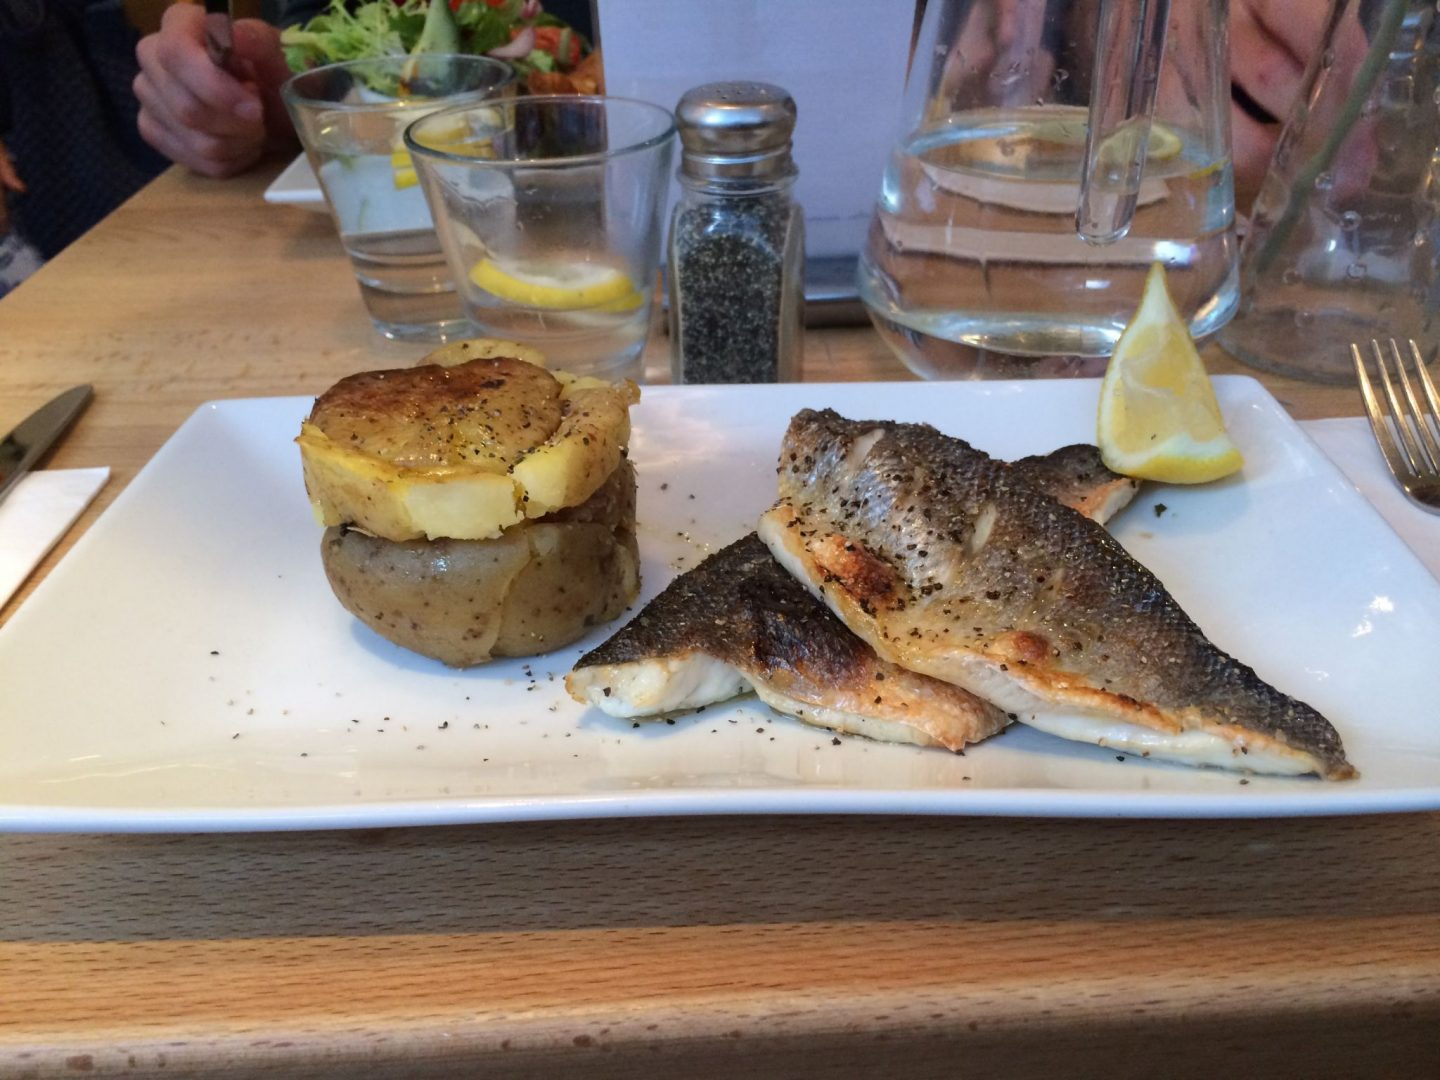 Seabass and potatoes at the Seafood Cafe, Cornwall